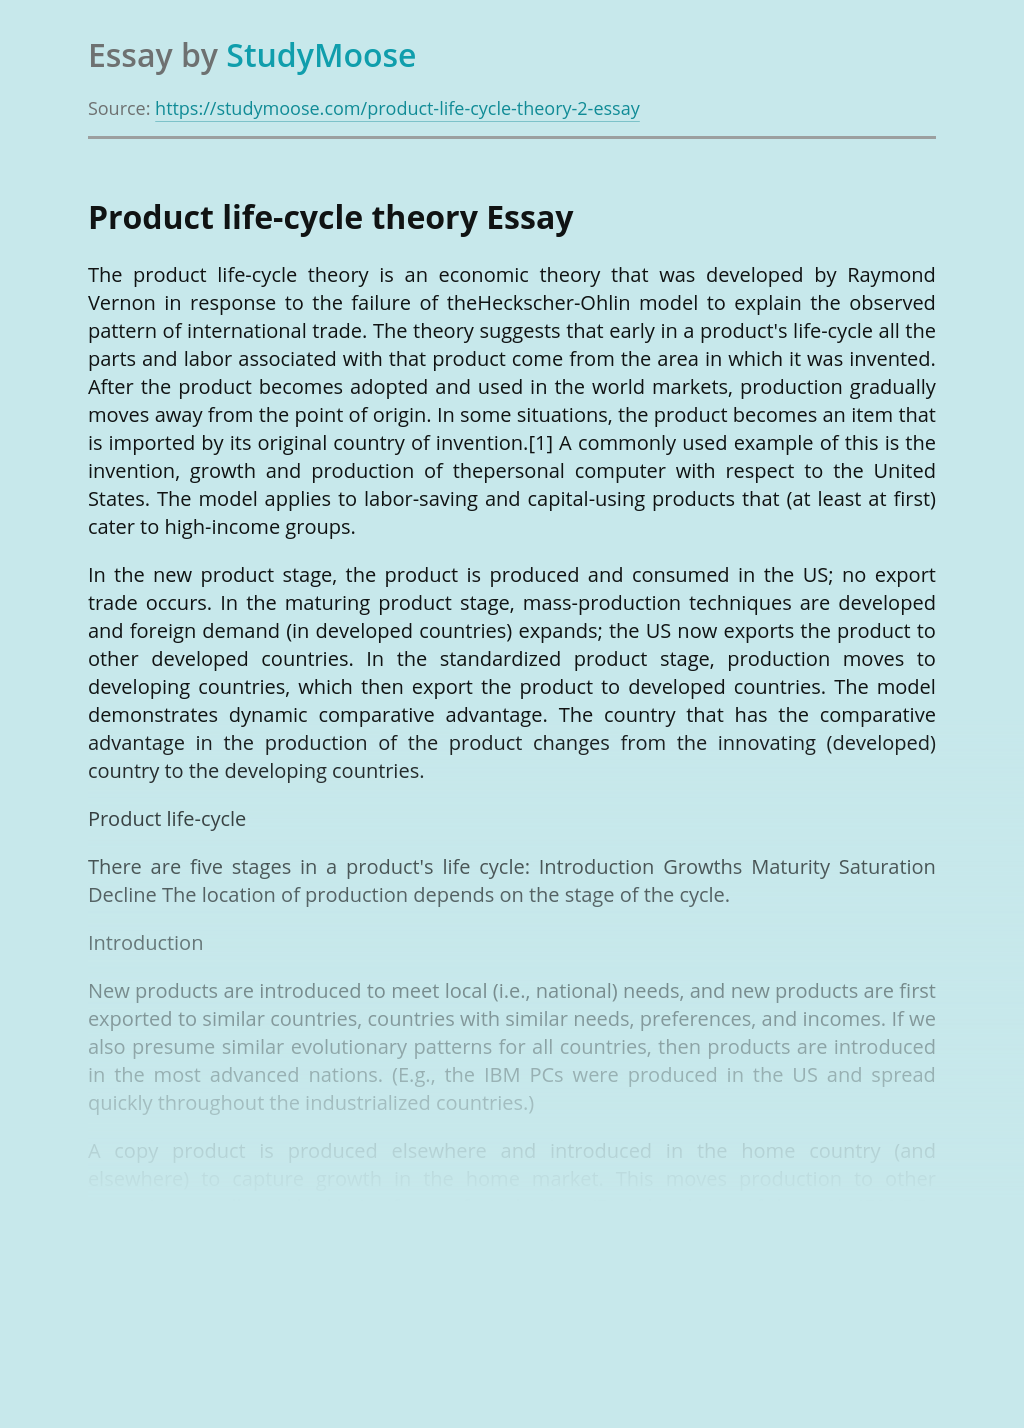 Product life-cycle theory